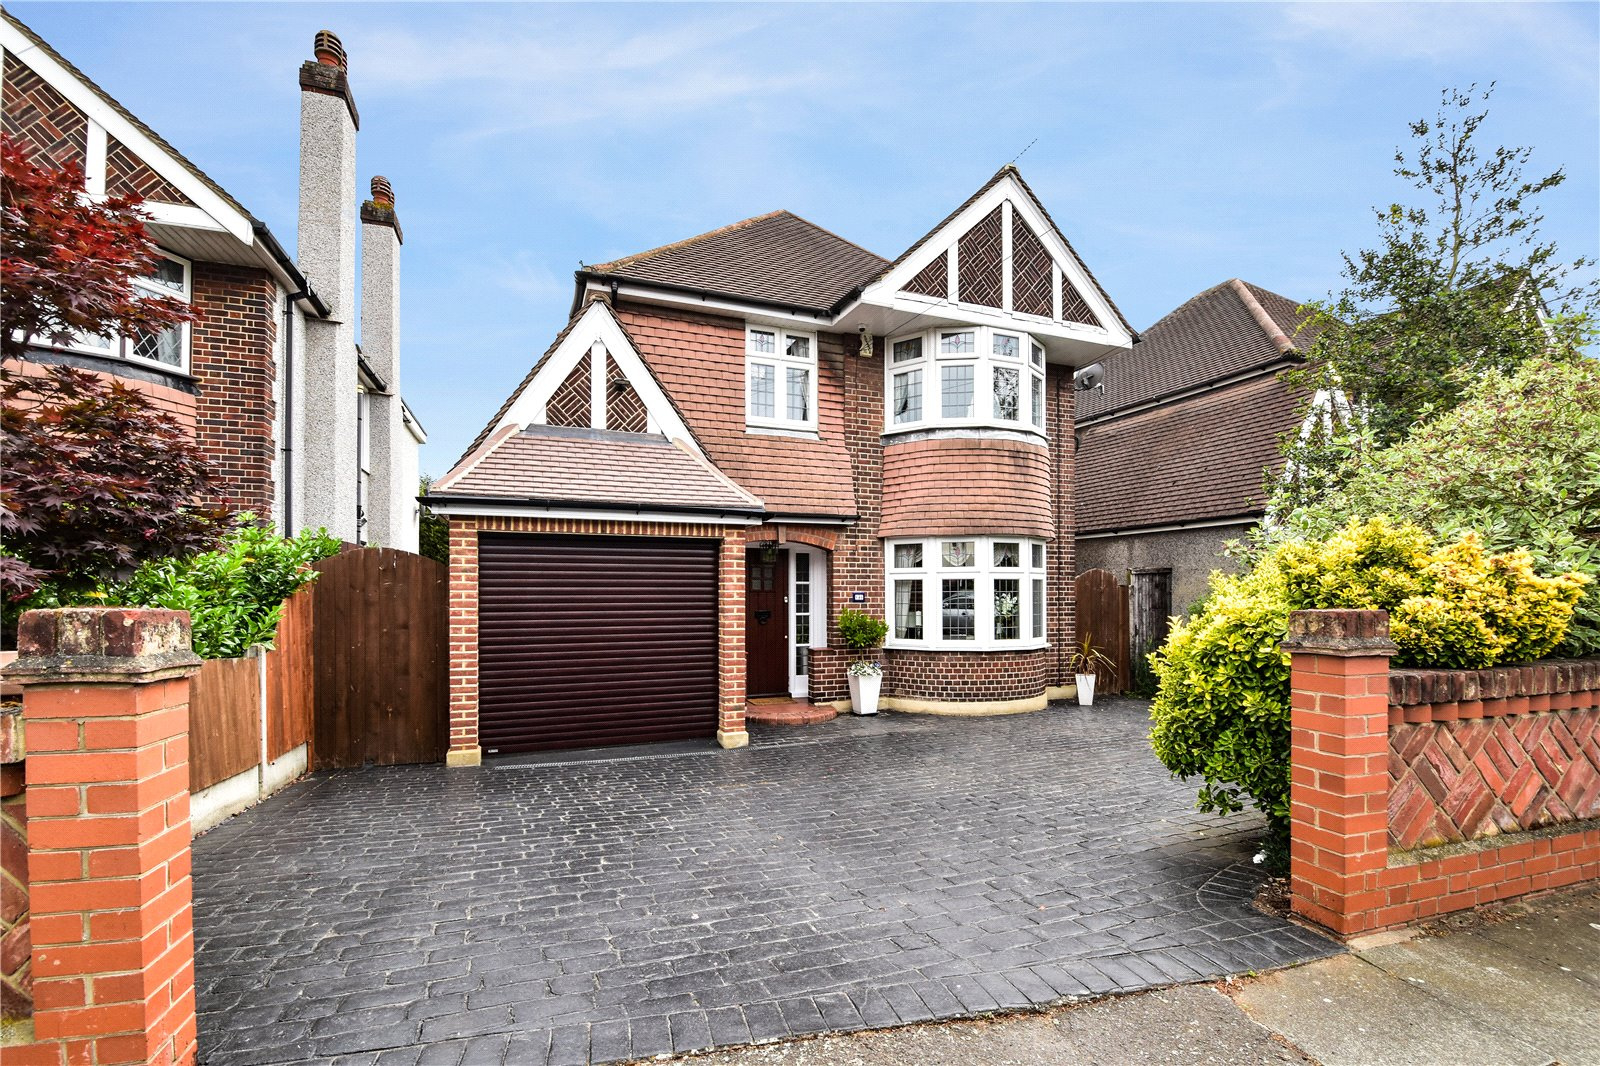 Heather Drive, West Dartford, Kent, DA1